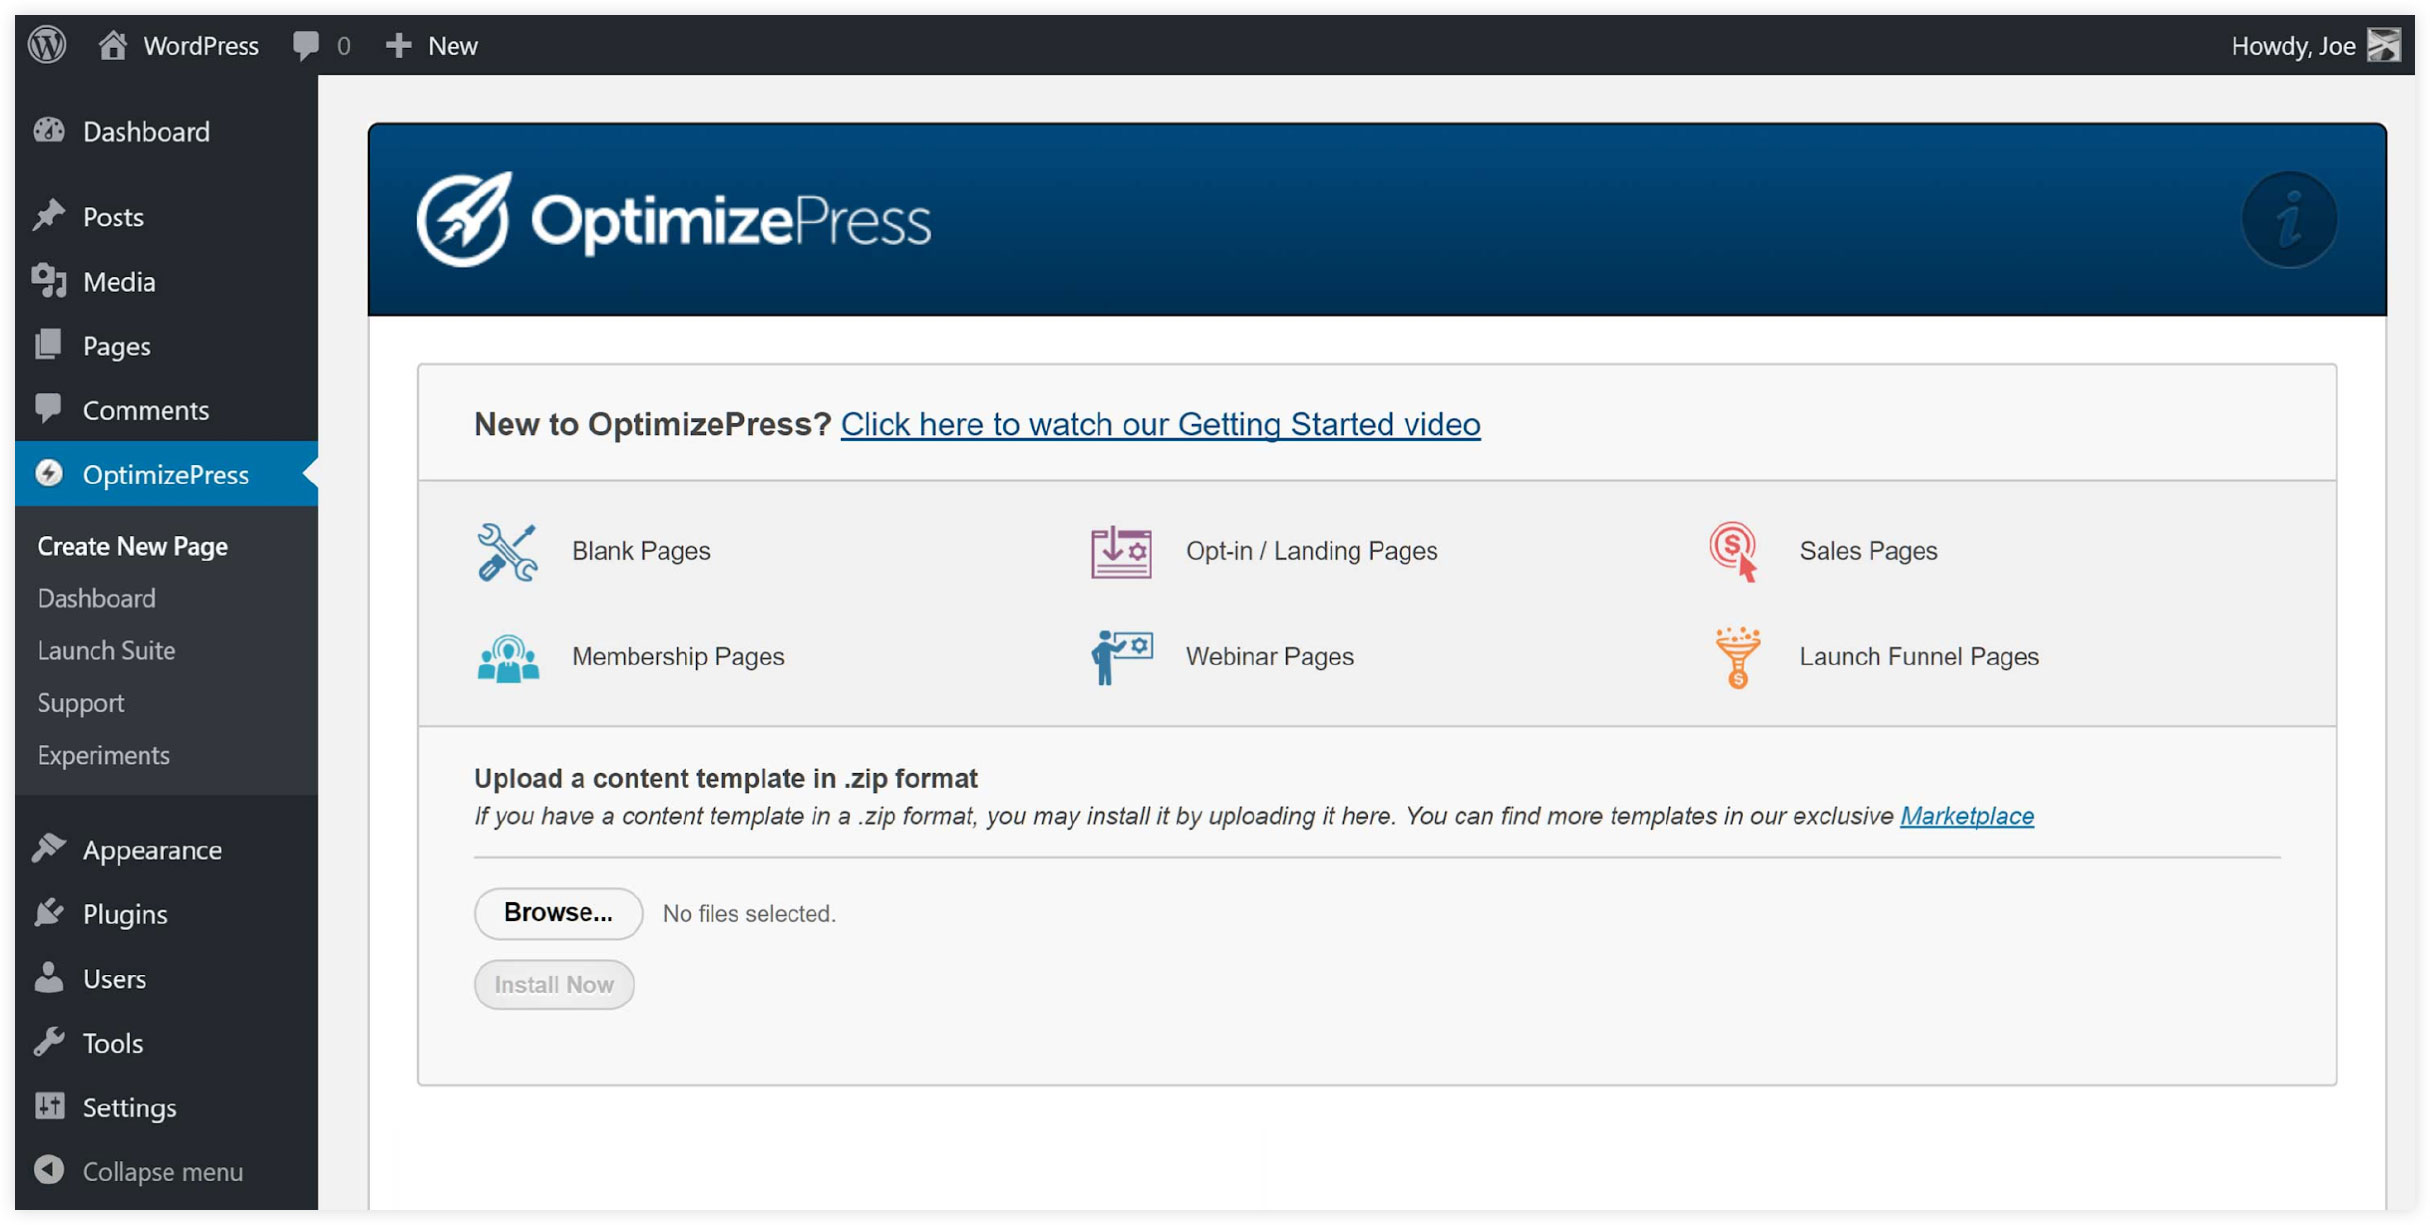 OptimizePress User Interface